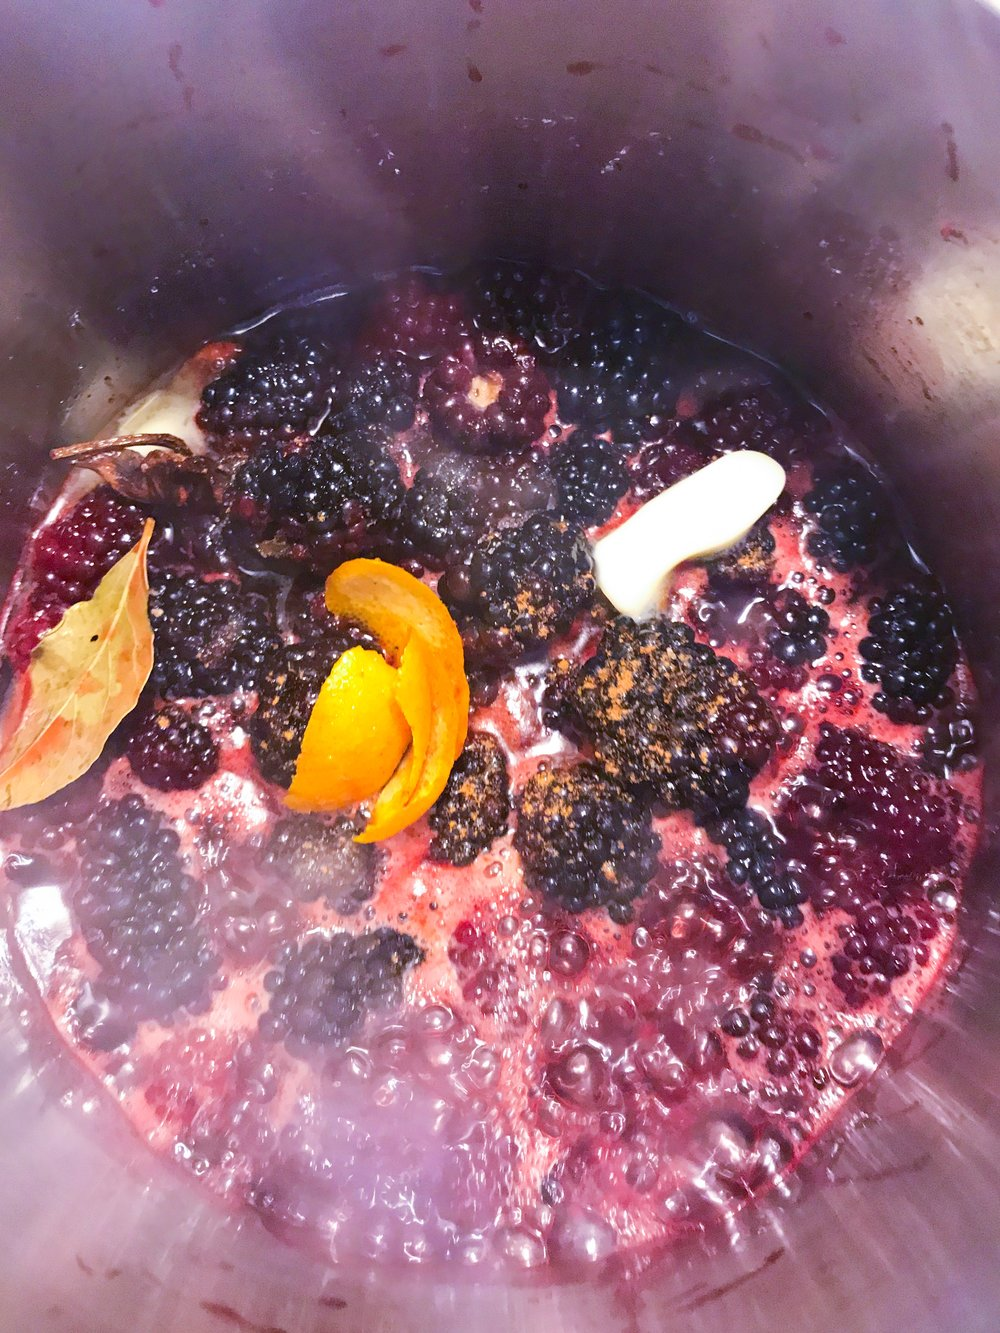 Blueberry Compote - Blackberry compote:In saucepan:-1 small box of blackberries-1/2 cup of cider vinegar-1/2 cup of red wine-2 oz butter-pinch of cinnamon powder-peel of 1 orange-pinch of salt and pepper-1/8 cup sugar in the raw-bring to a simmer and let reduce until blackberries have cooked down and liquid is a syrupy consistency